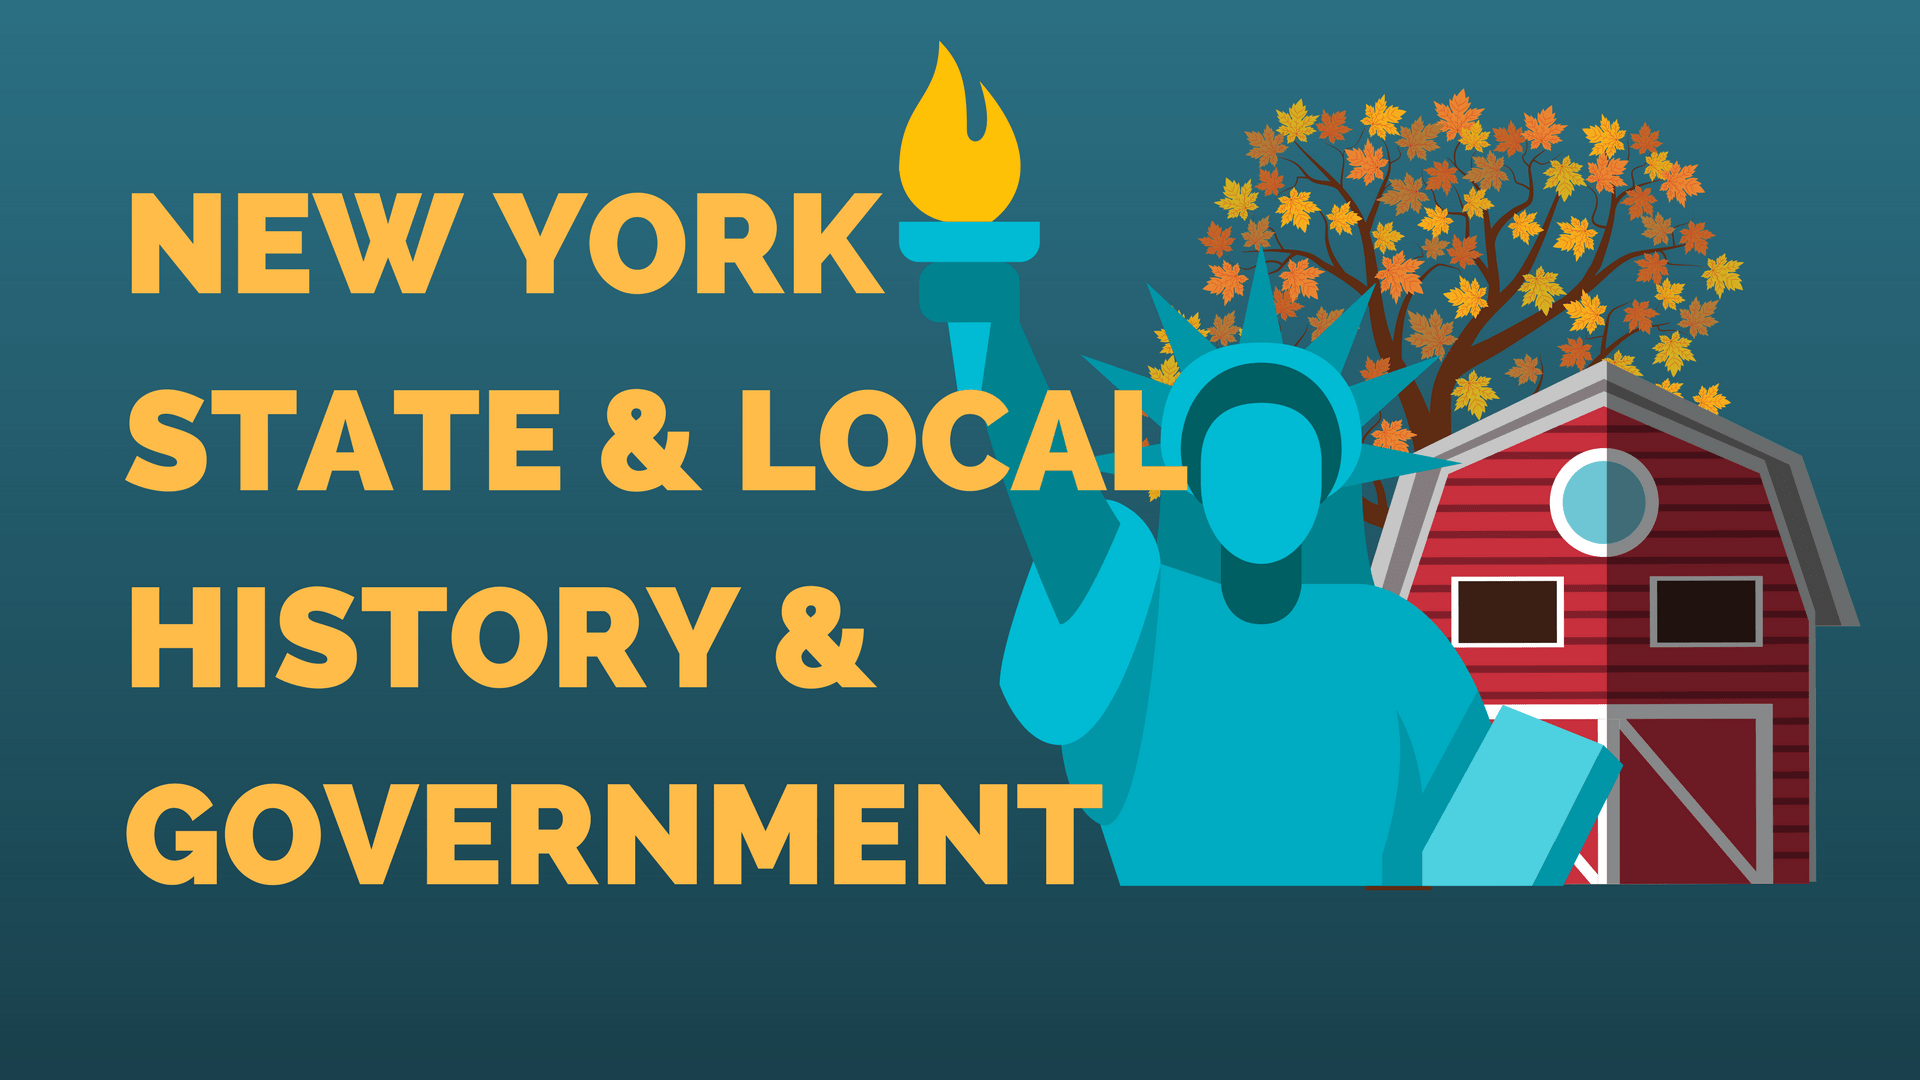 hight resolution of New York State and Local History and Government   PBS LearningMedia